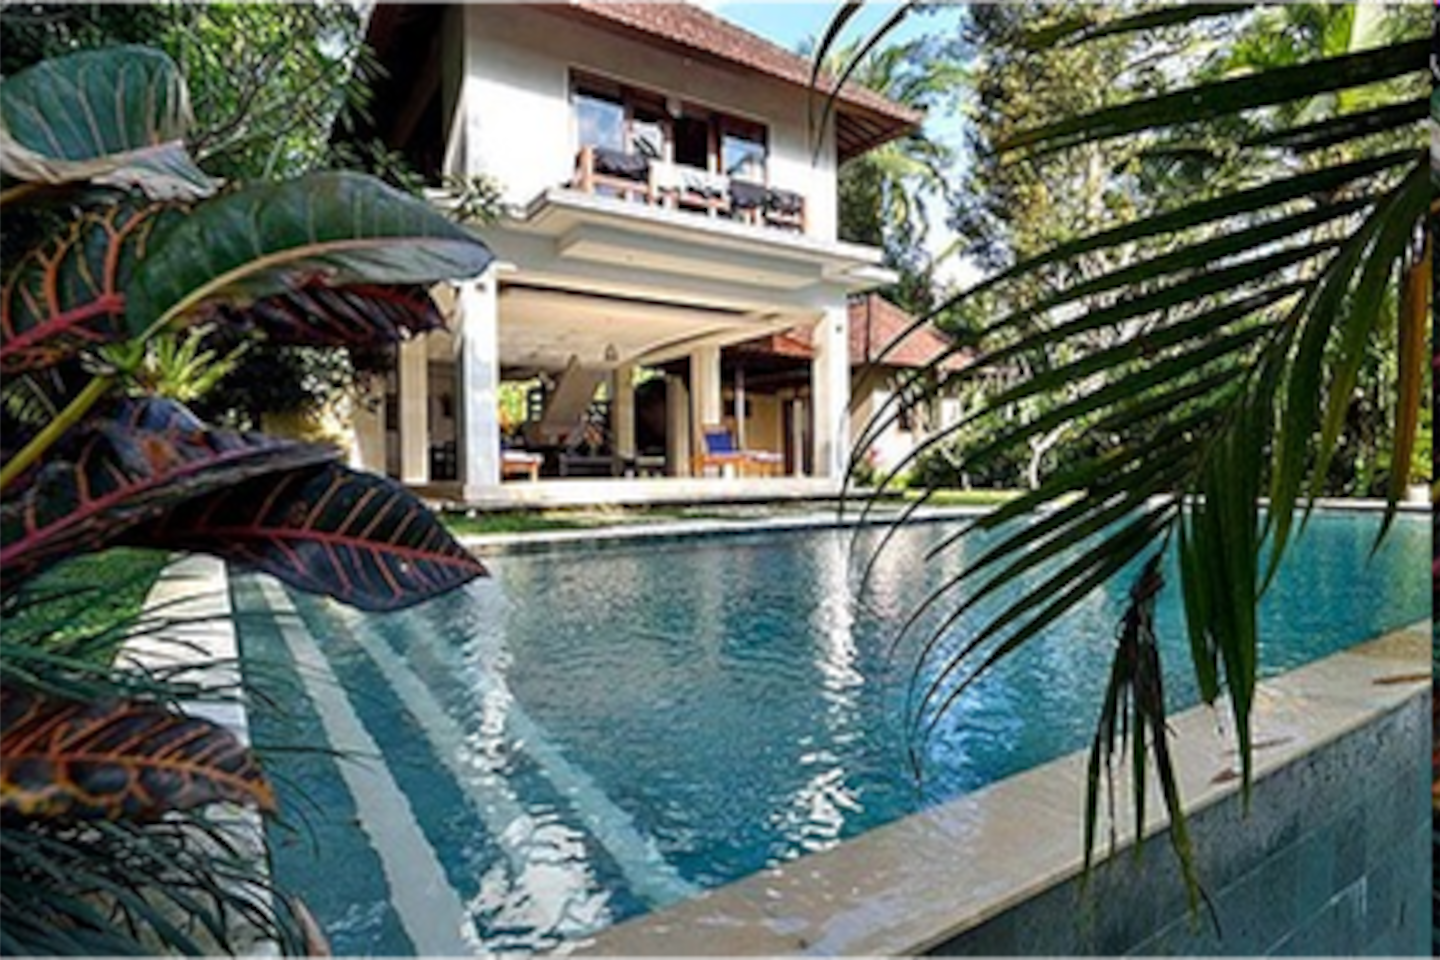 Infinity swimming pool and front of house.